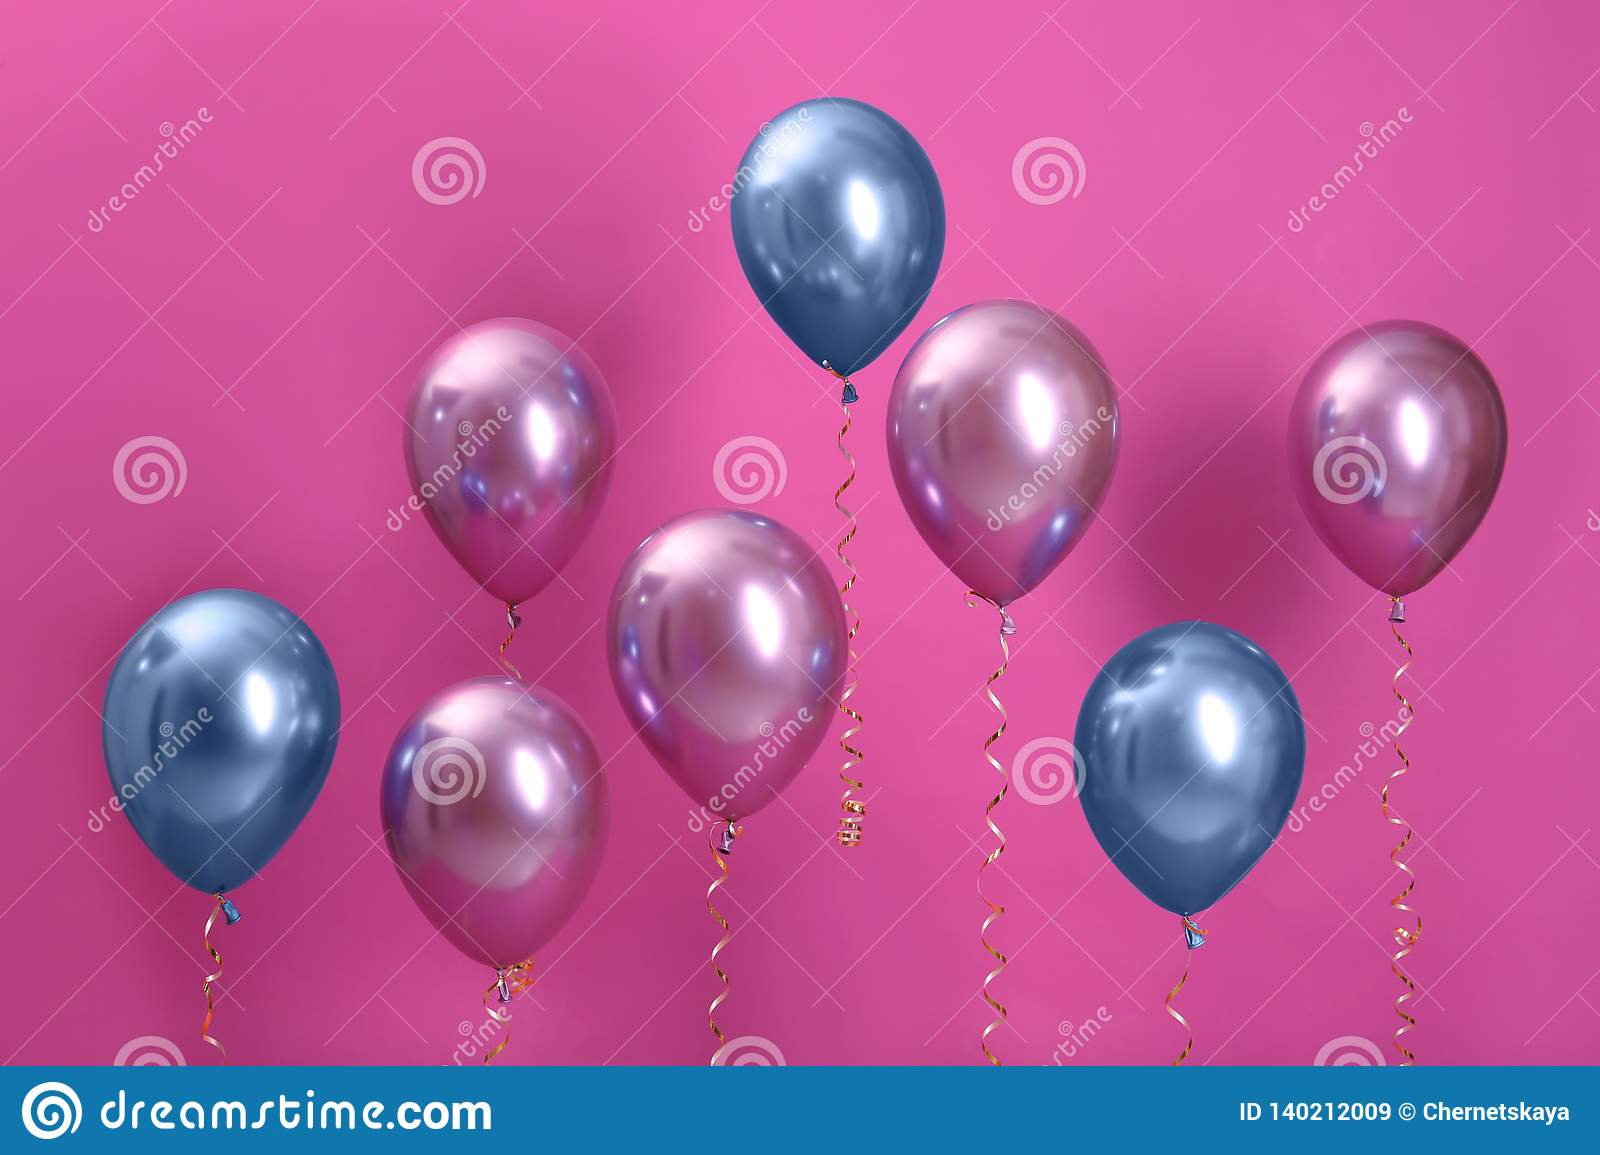 Bright balloons with ribbons